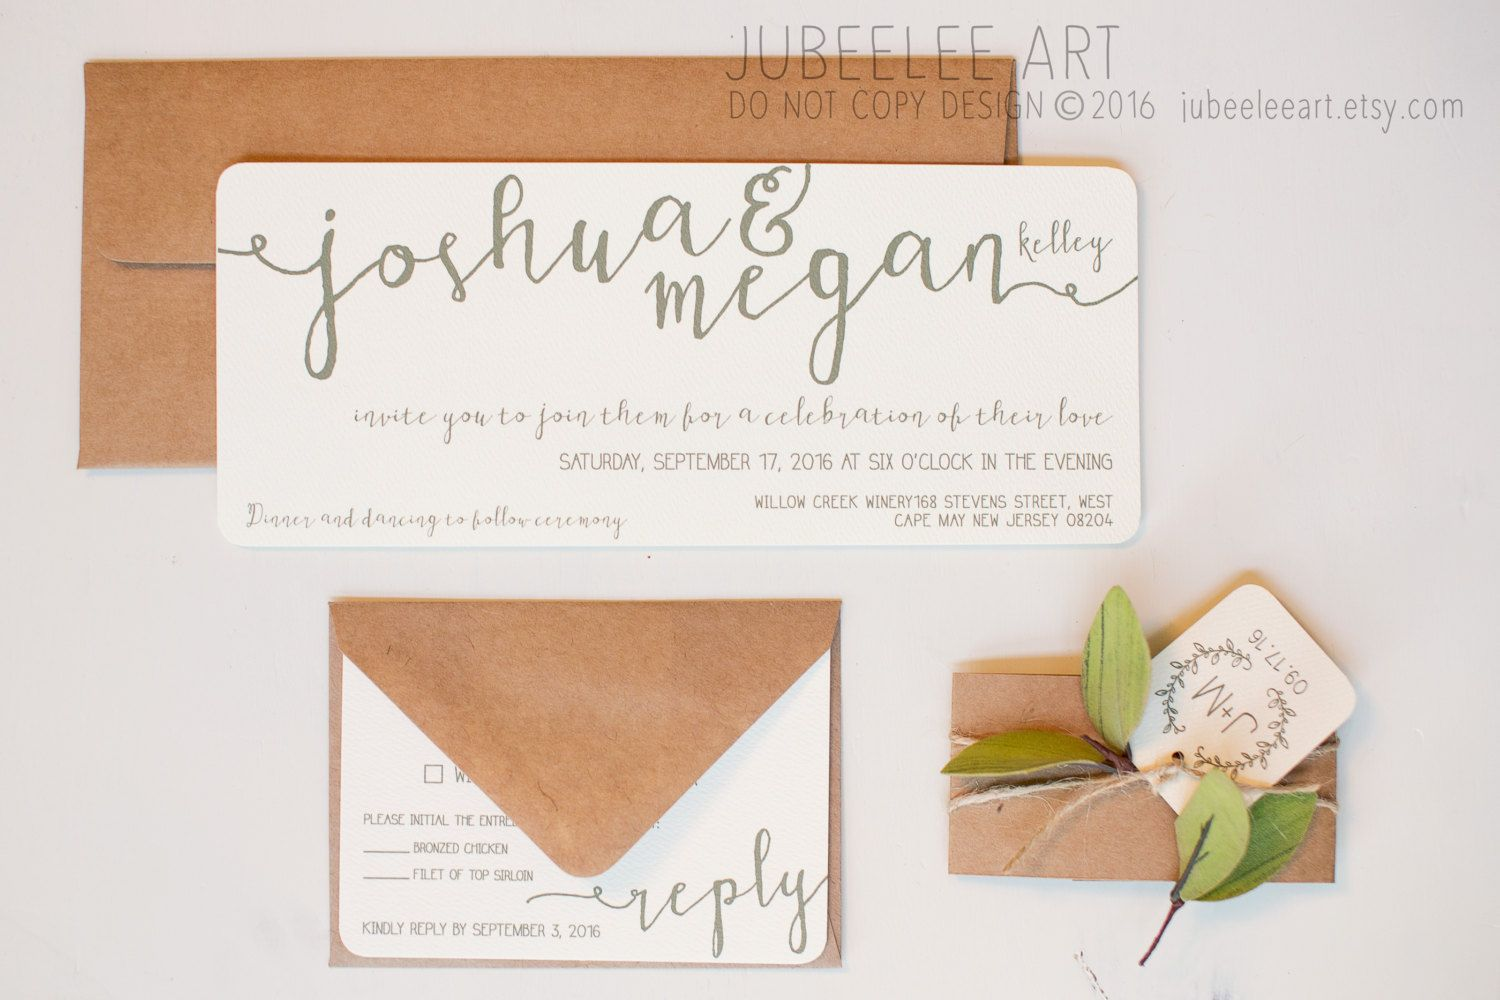 This invitation, sized to fit no.10 envelopes, is right on point with the modern calligraphy trend sweeping through the wedding industry. The bold names extend beyond the edge of the page creating an elegant, yet simple design. The colors on this design can be customized to coordinate with your wedding theme. This is a classic and timeless style that will surely wow your guests and set the tone for your wedding day, while simultaneously displaying the important details so guests will be…